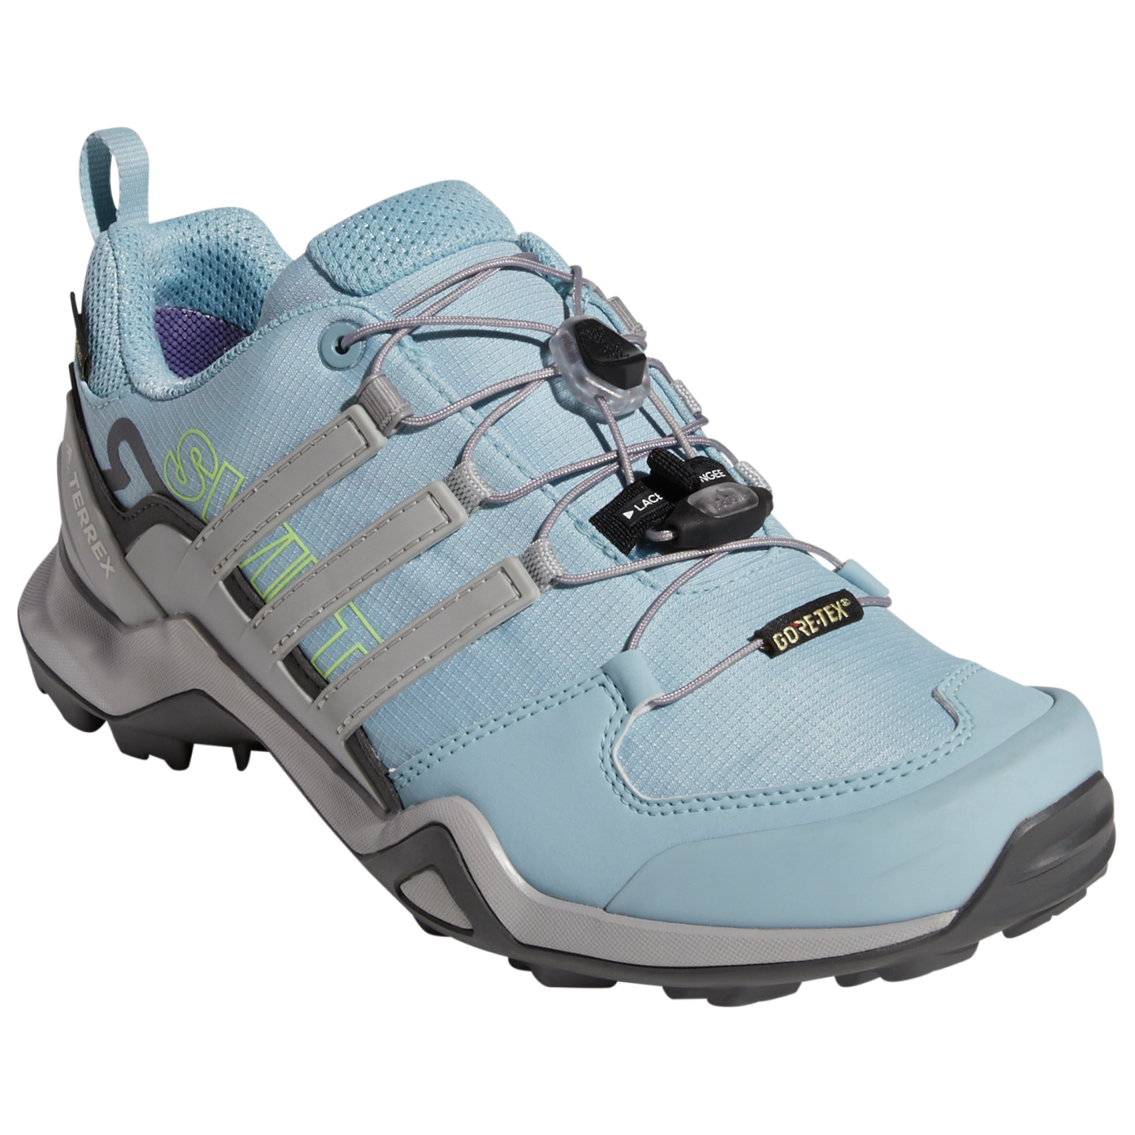 af4813bd423e9 adidas - Women s Terrex Swift R2 GTX - Multisport shoes